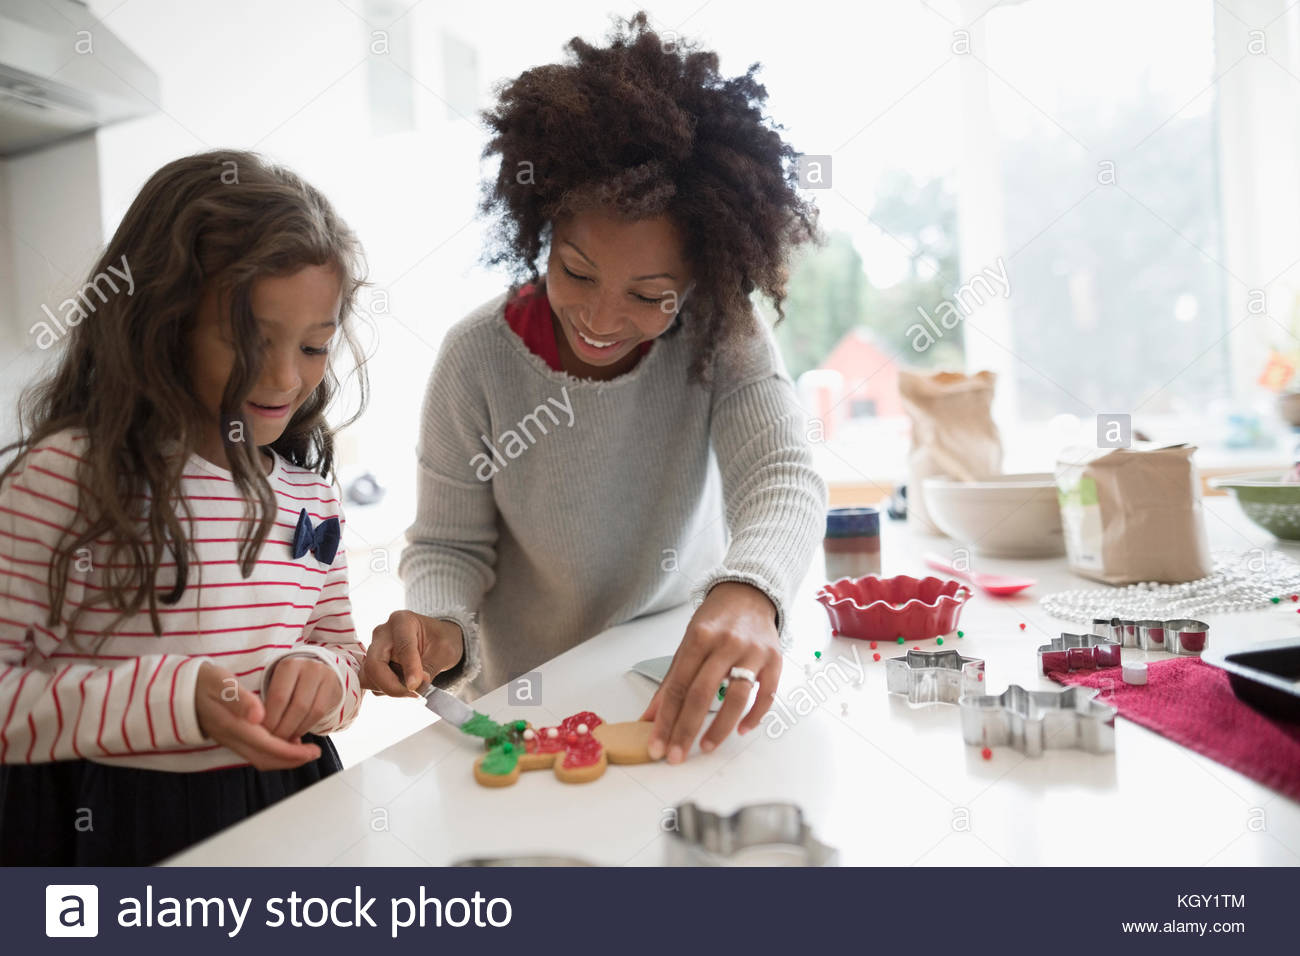 Mother and daughter decorating Christmas gingerbread cookies in kitchen - Stock Image